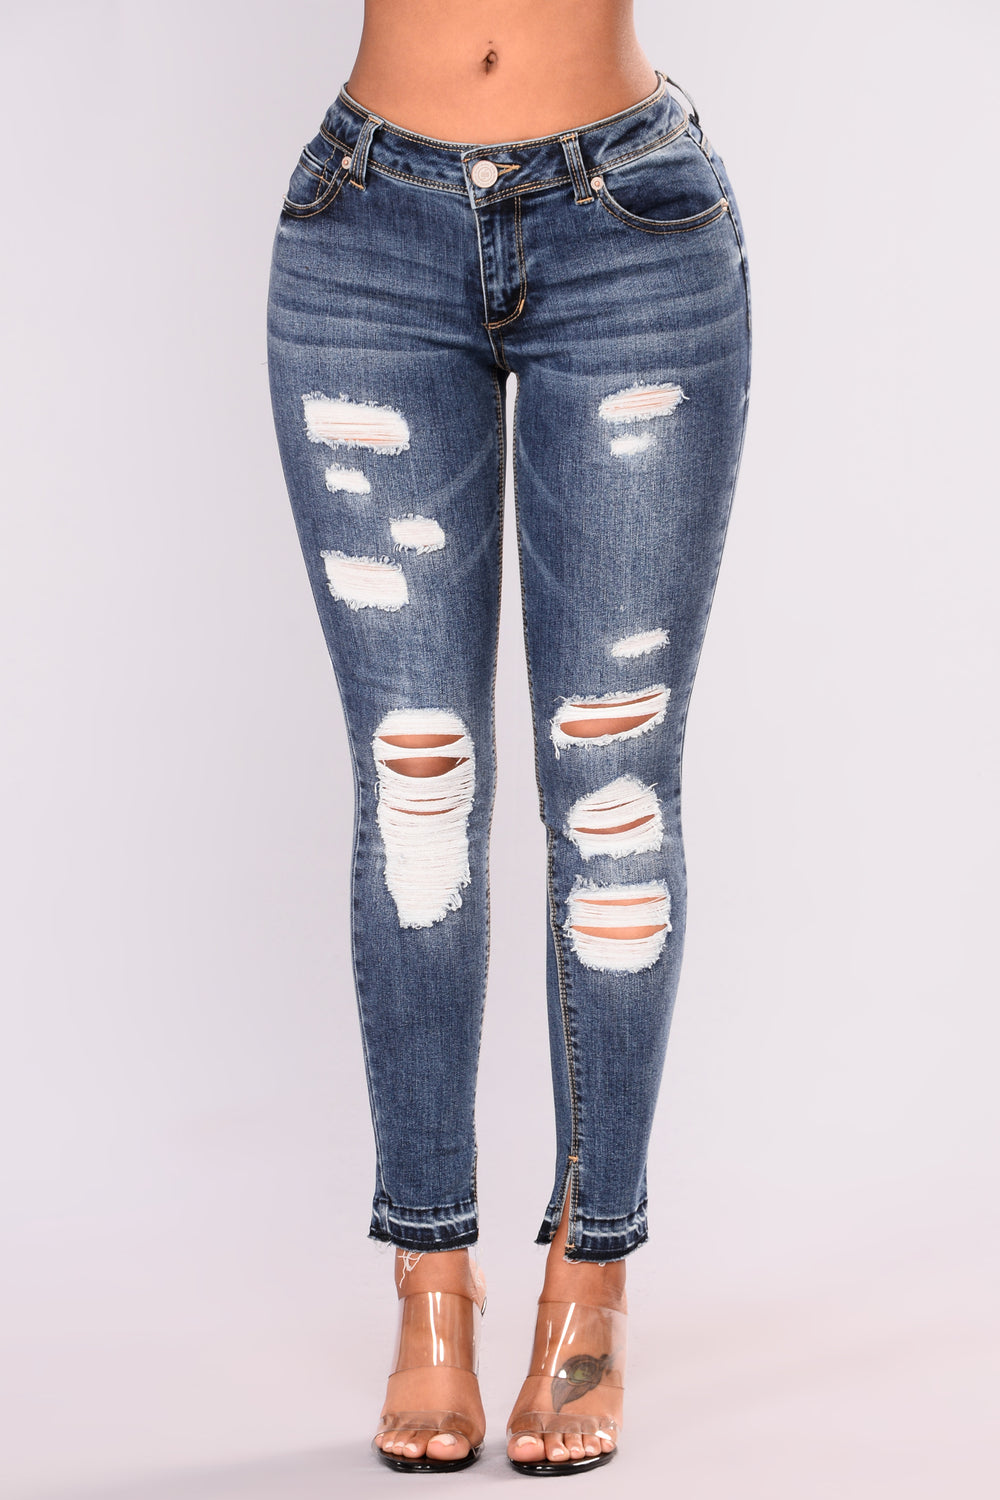 Up Against The Wall Ankle Jeans - Dark Denim